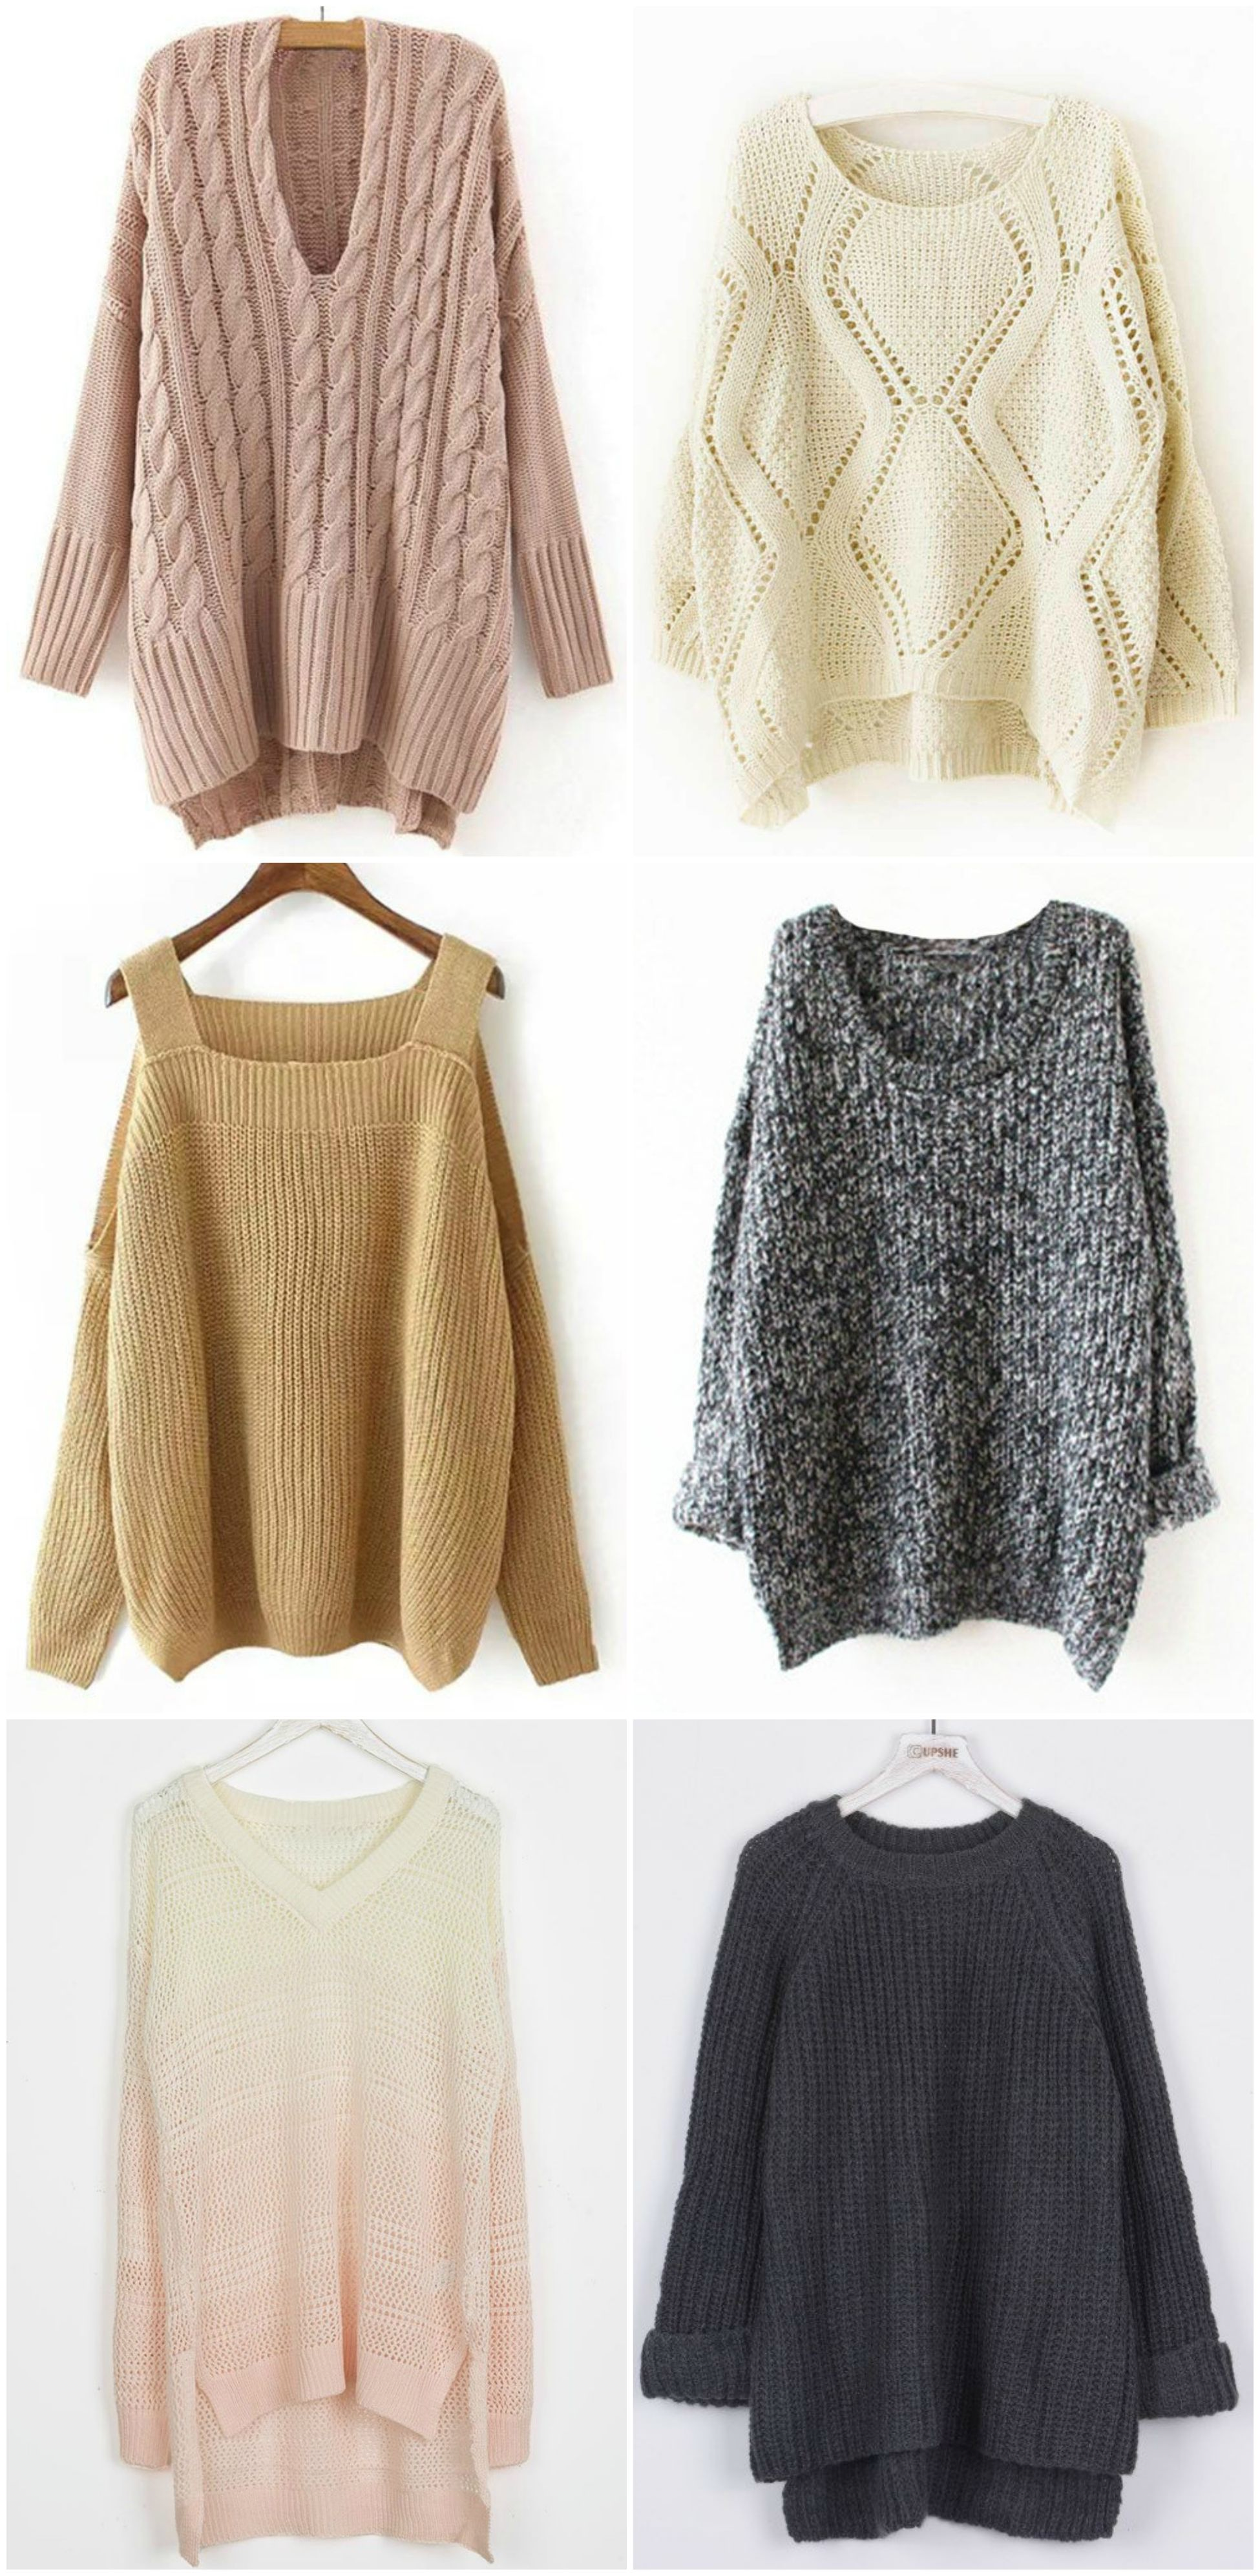 6 Essential Fall Sweaters That Are Ridiculously Comfy #sweaters ...